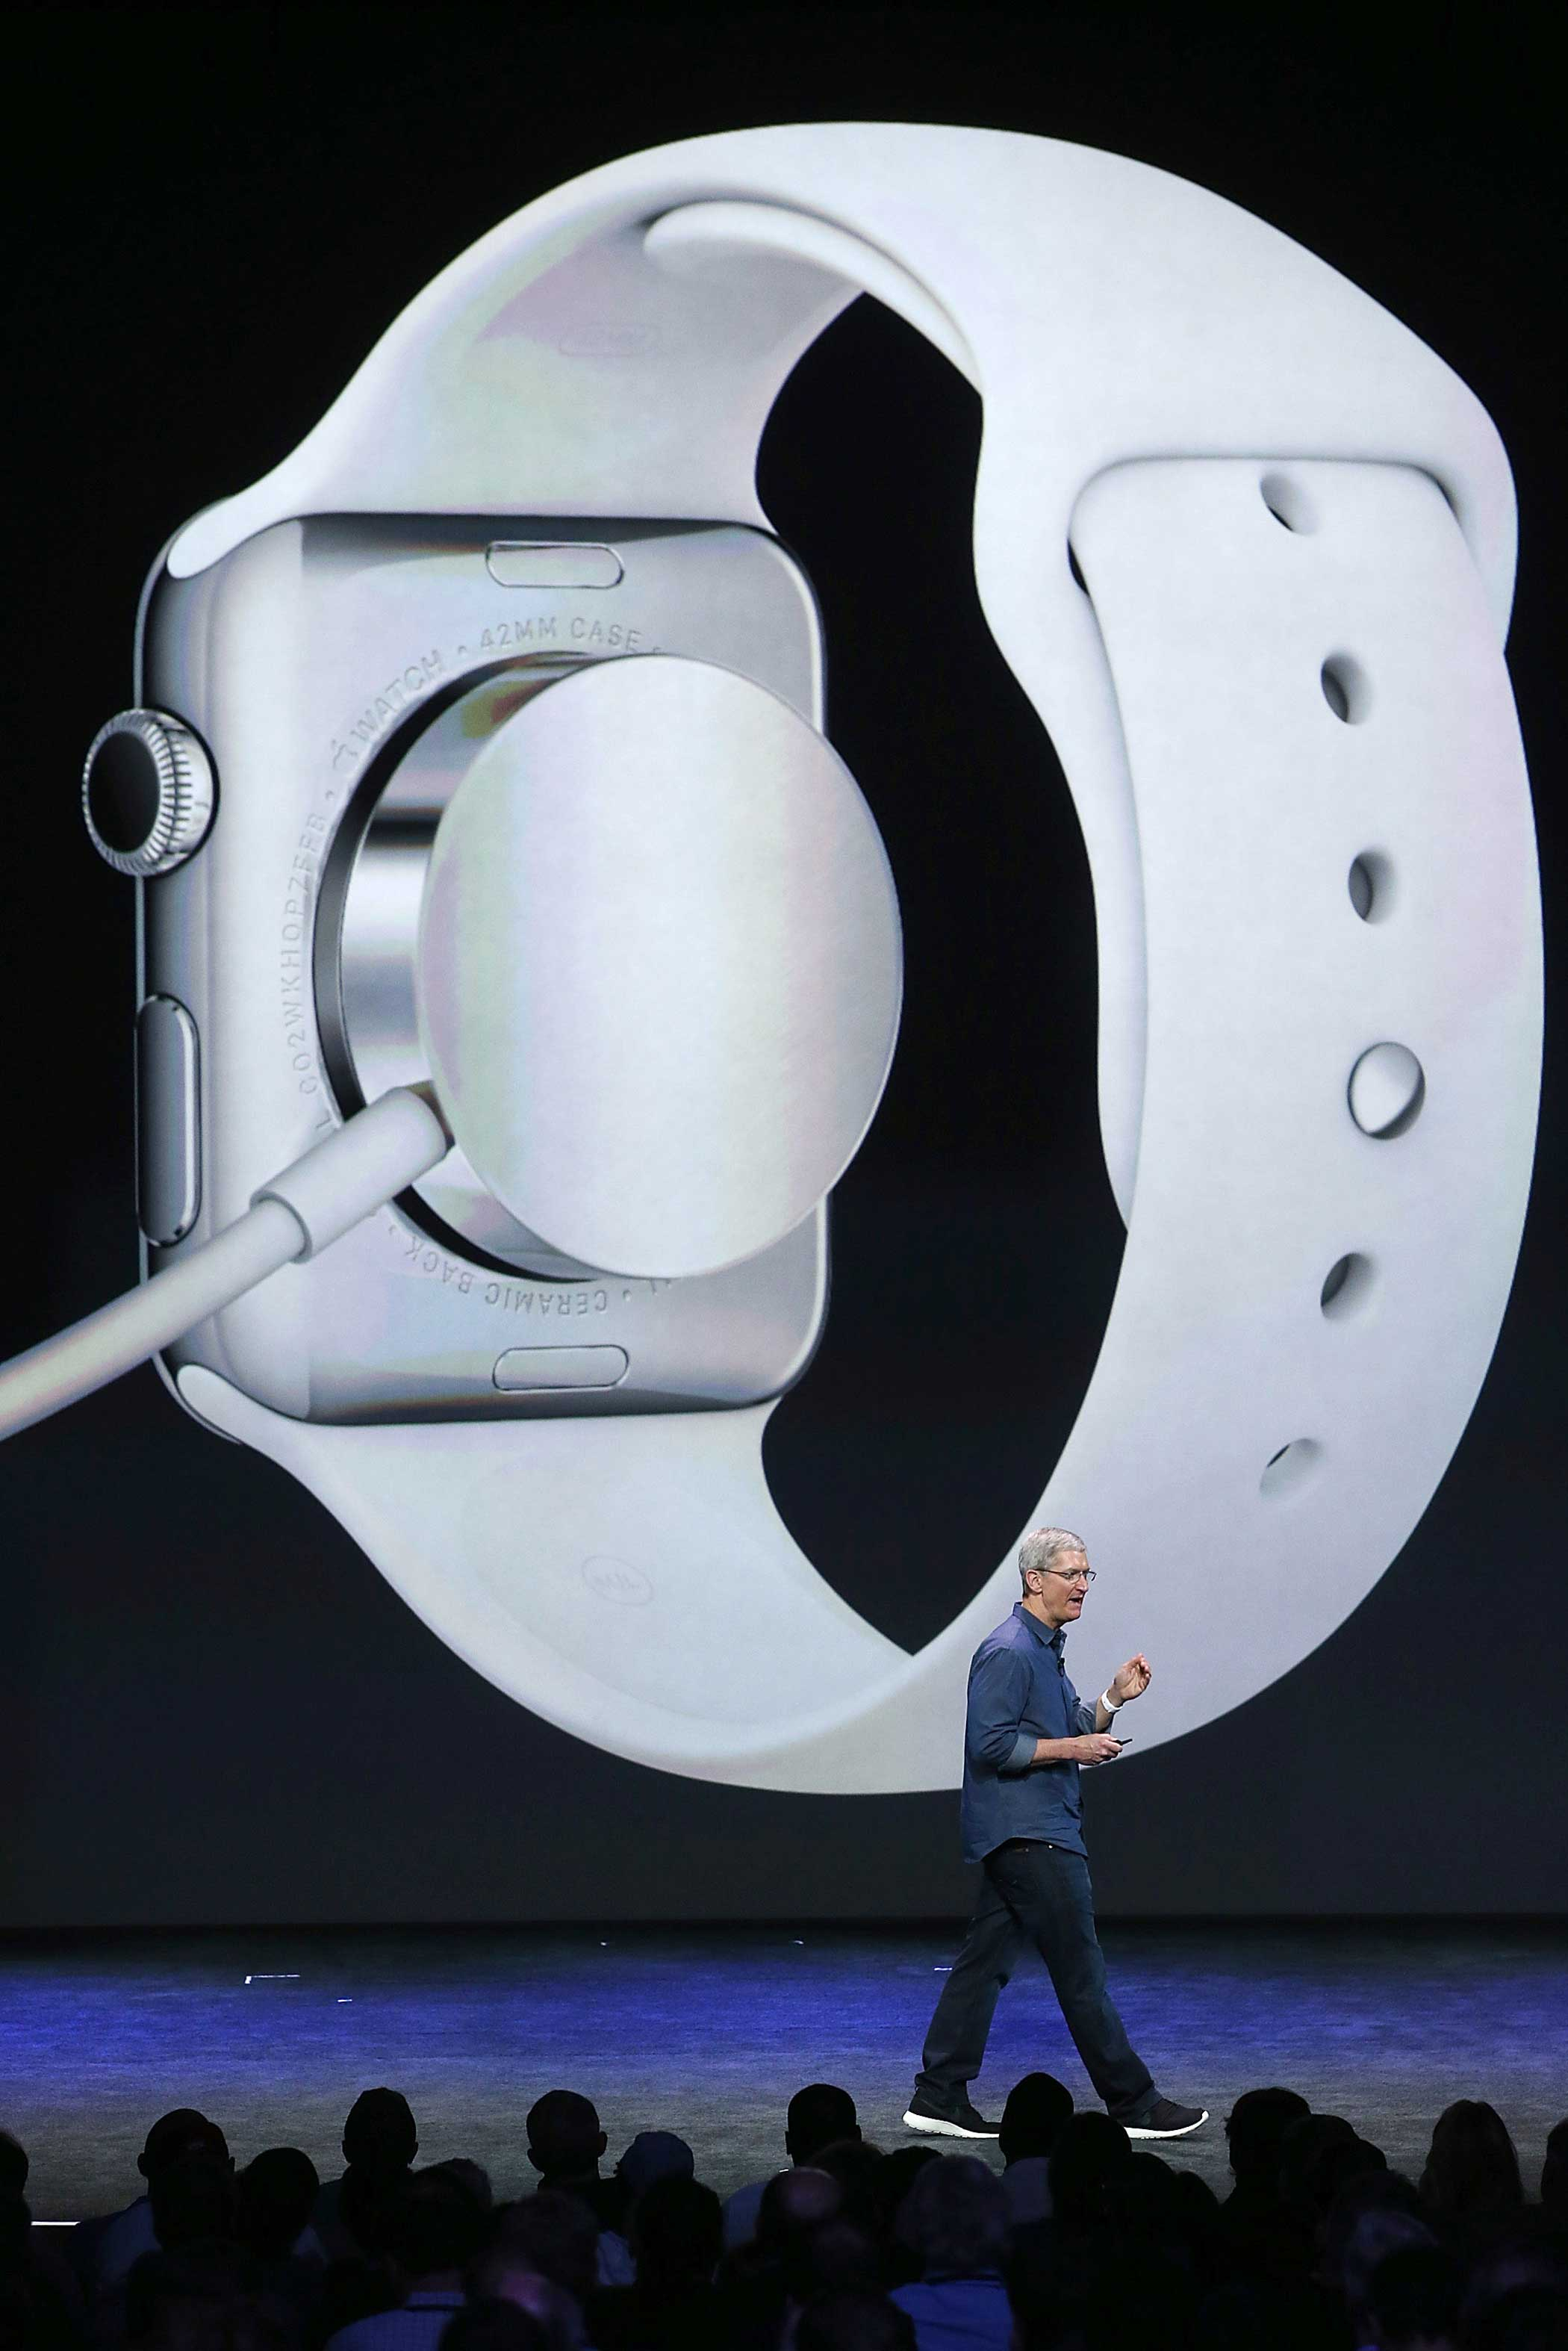 CEO Tim Cook has said the Watch will last about a day before it needs to be recharged. So far, battery life has been the biggest downside of most wearables. The Watch recharges through the magnetic system shown here.